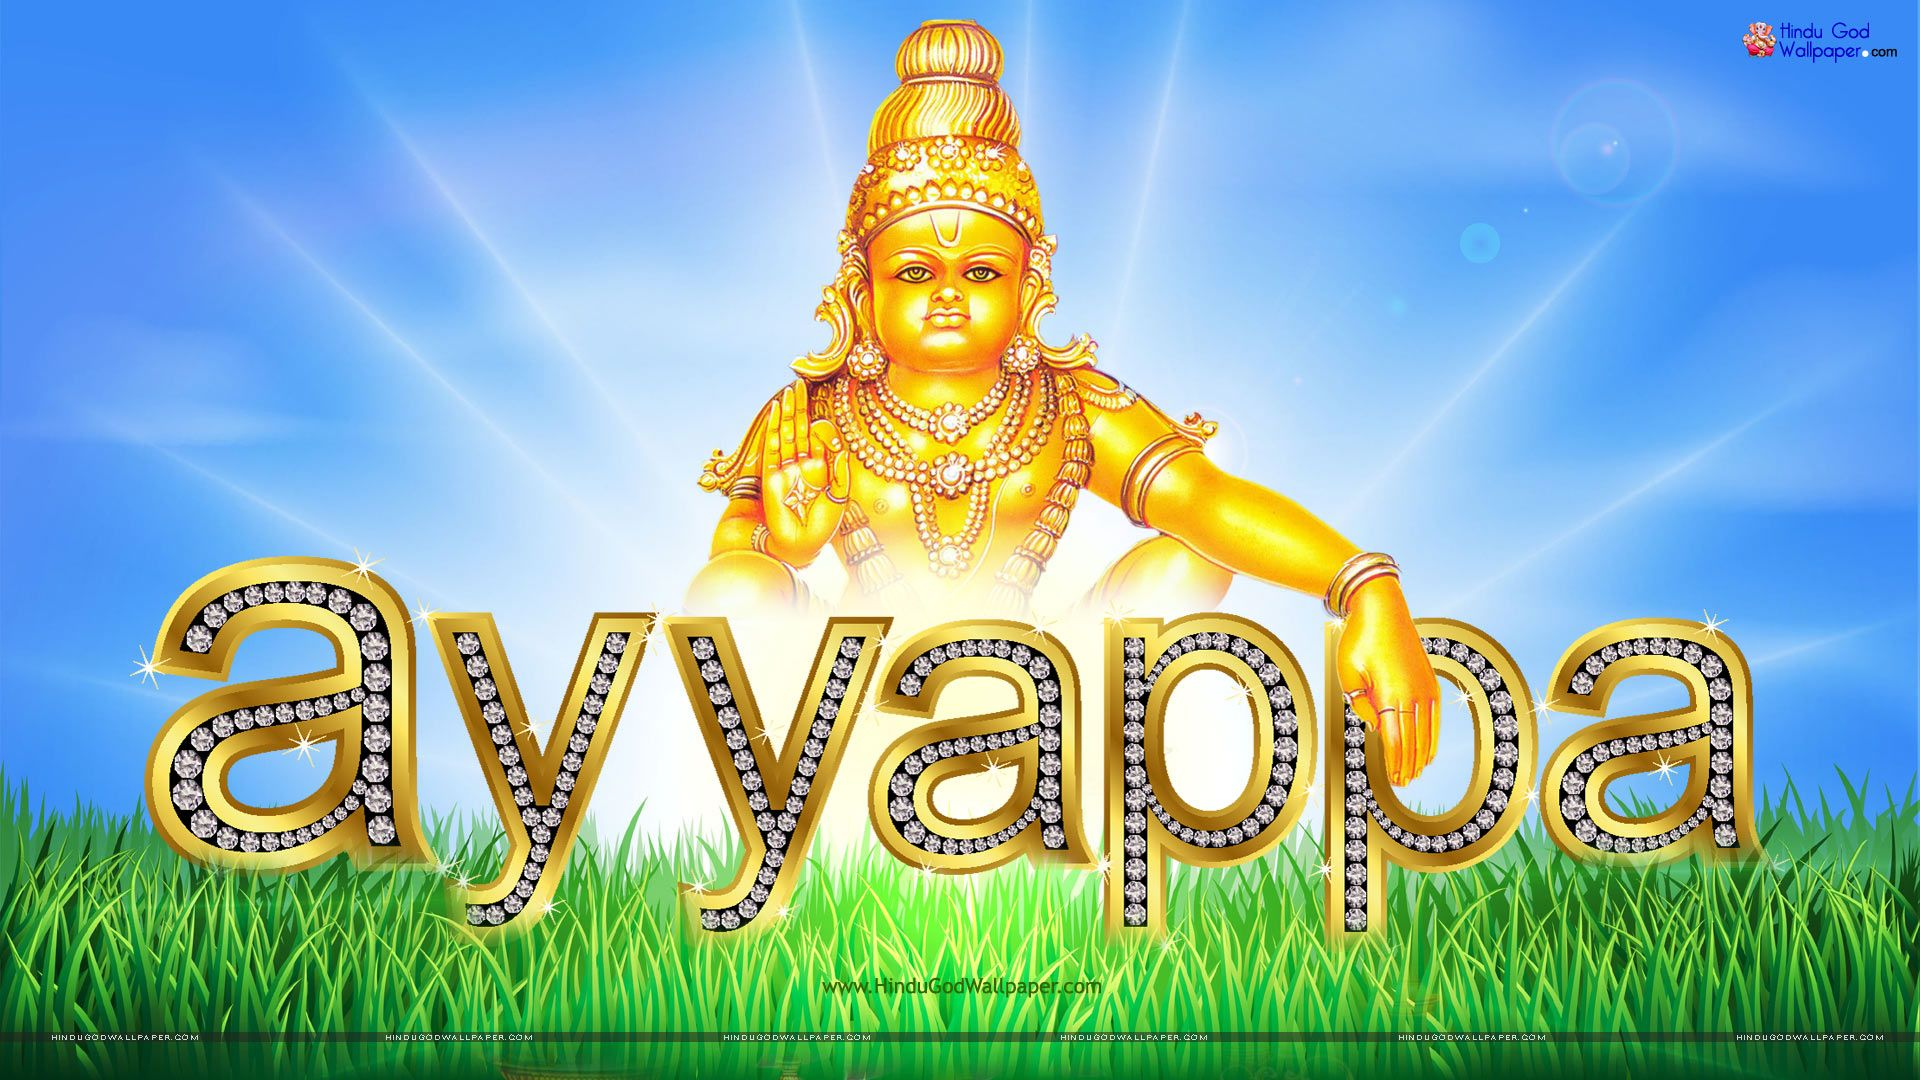 God Ayyappa Wallpapers High Resolution 1080p Hd Wallpapers 1080p Hd Wallpaper Hindu Gods